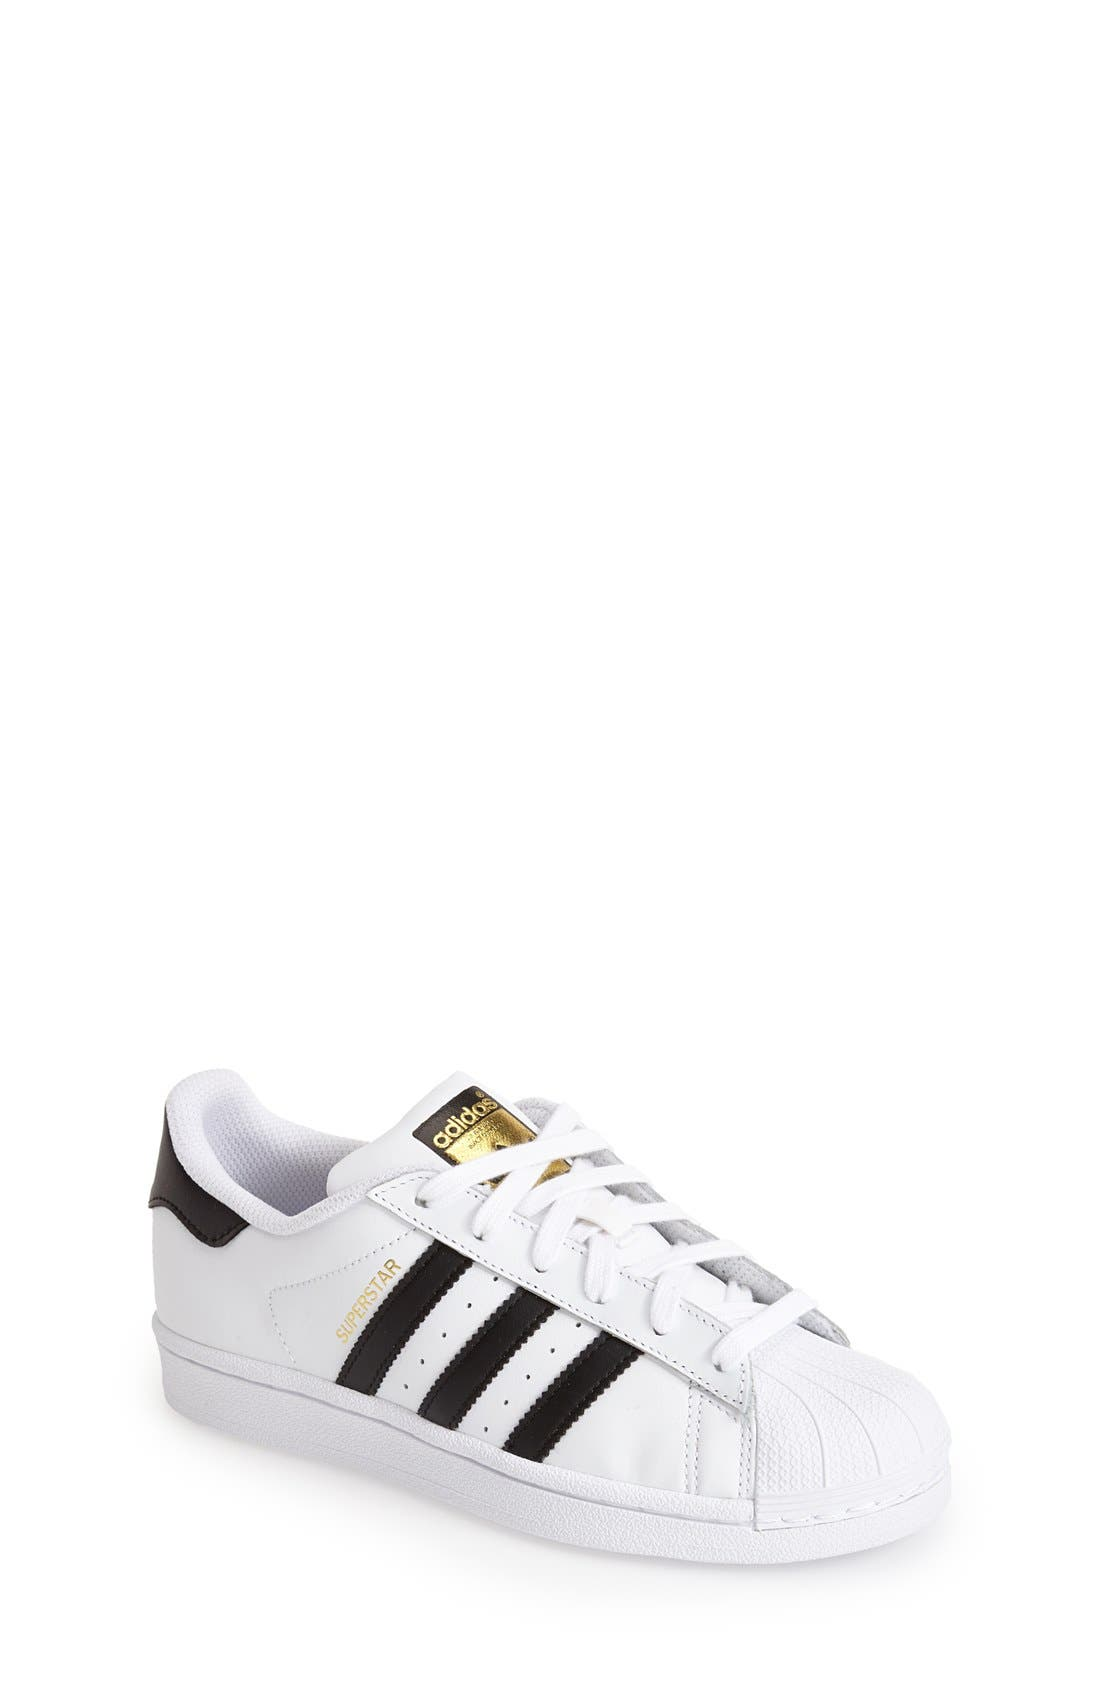 ADIDAS 'Superstar II' Sneaker, Main, color, WHITE/ BLACK/ WHITE